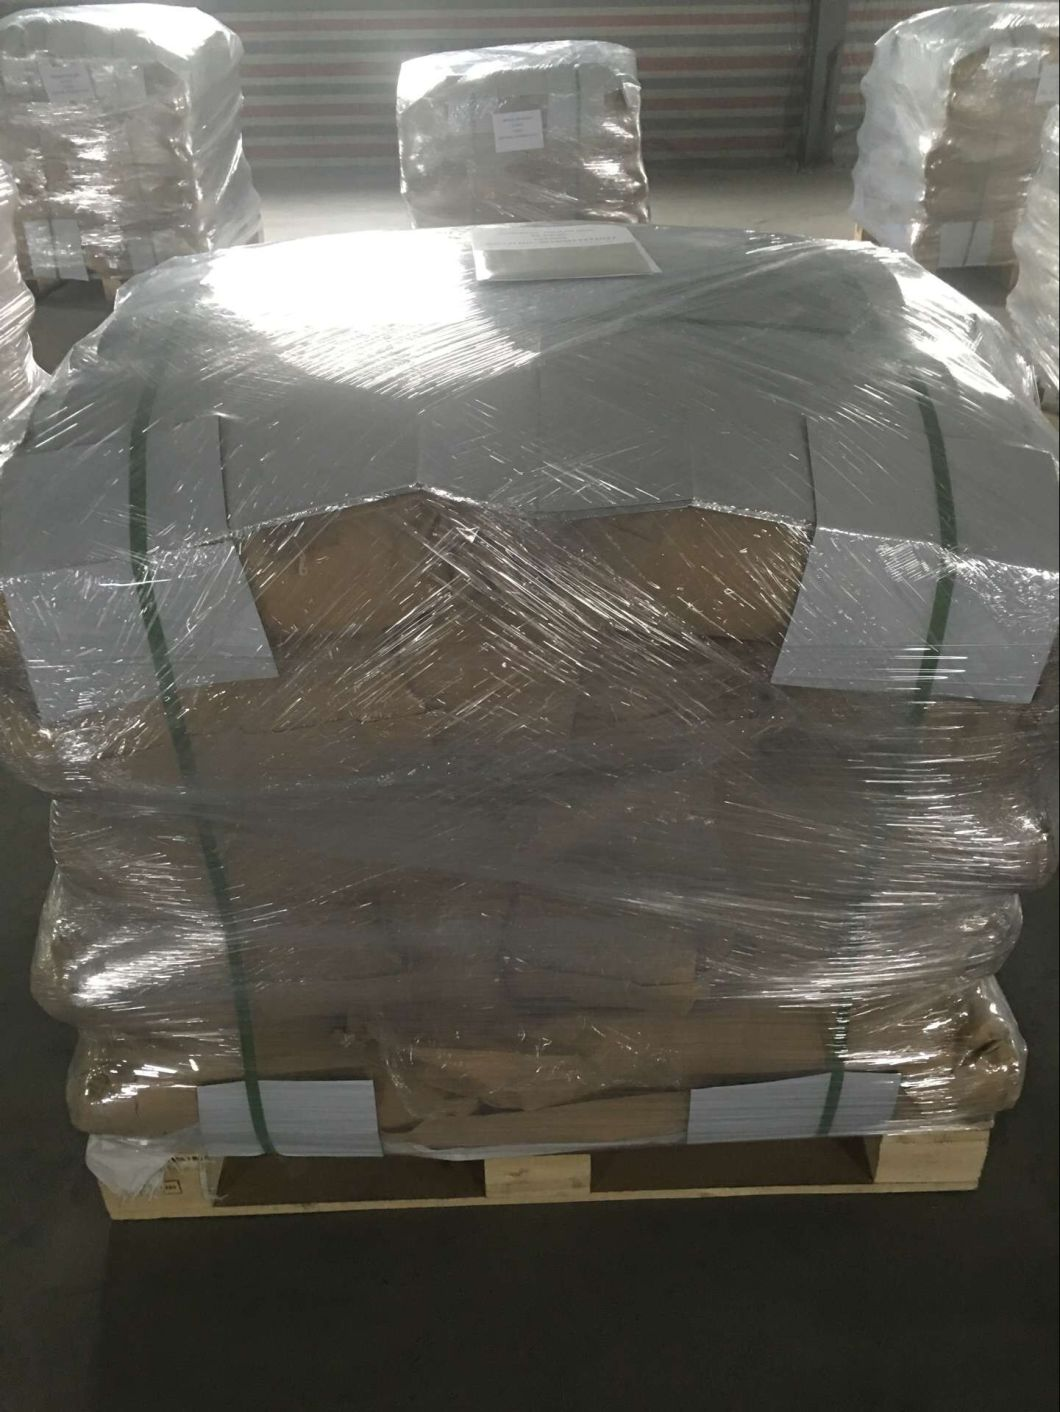 Food and Pharmaceutical Grade Dextrose Anhydrous, Bp Dextrose Anhydrous Injection